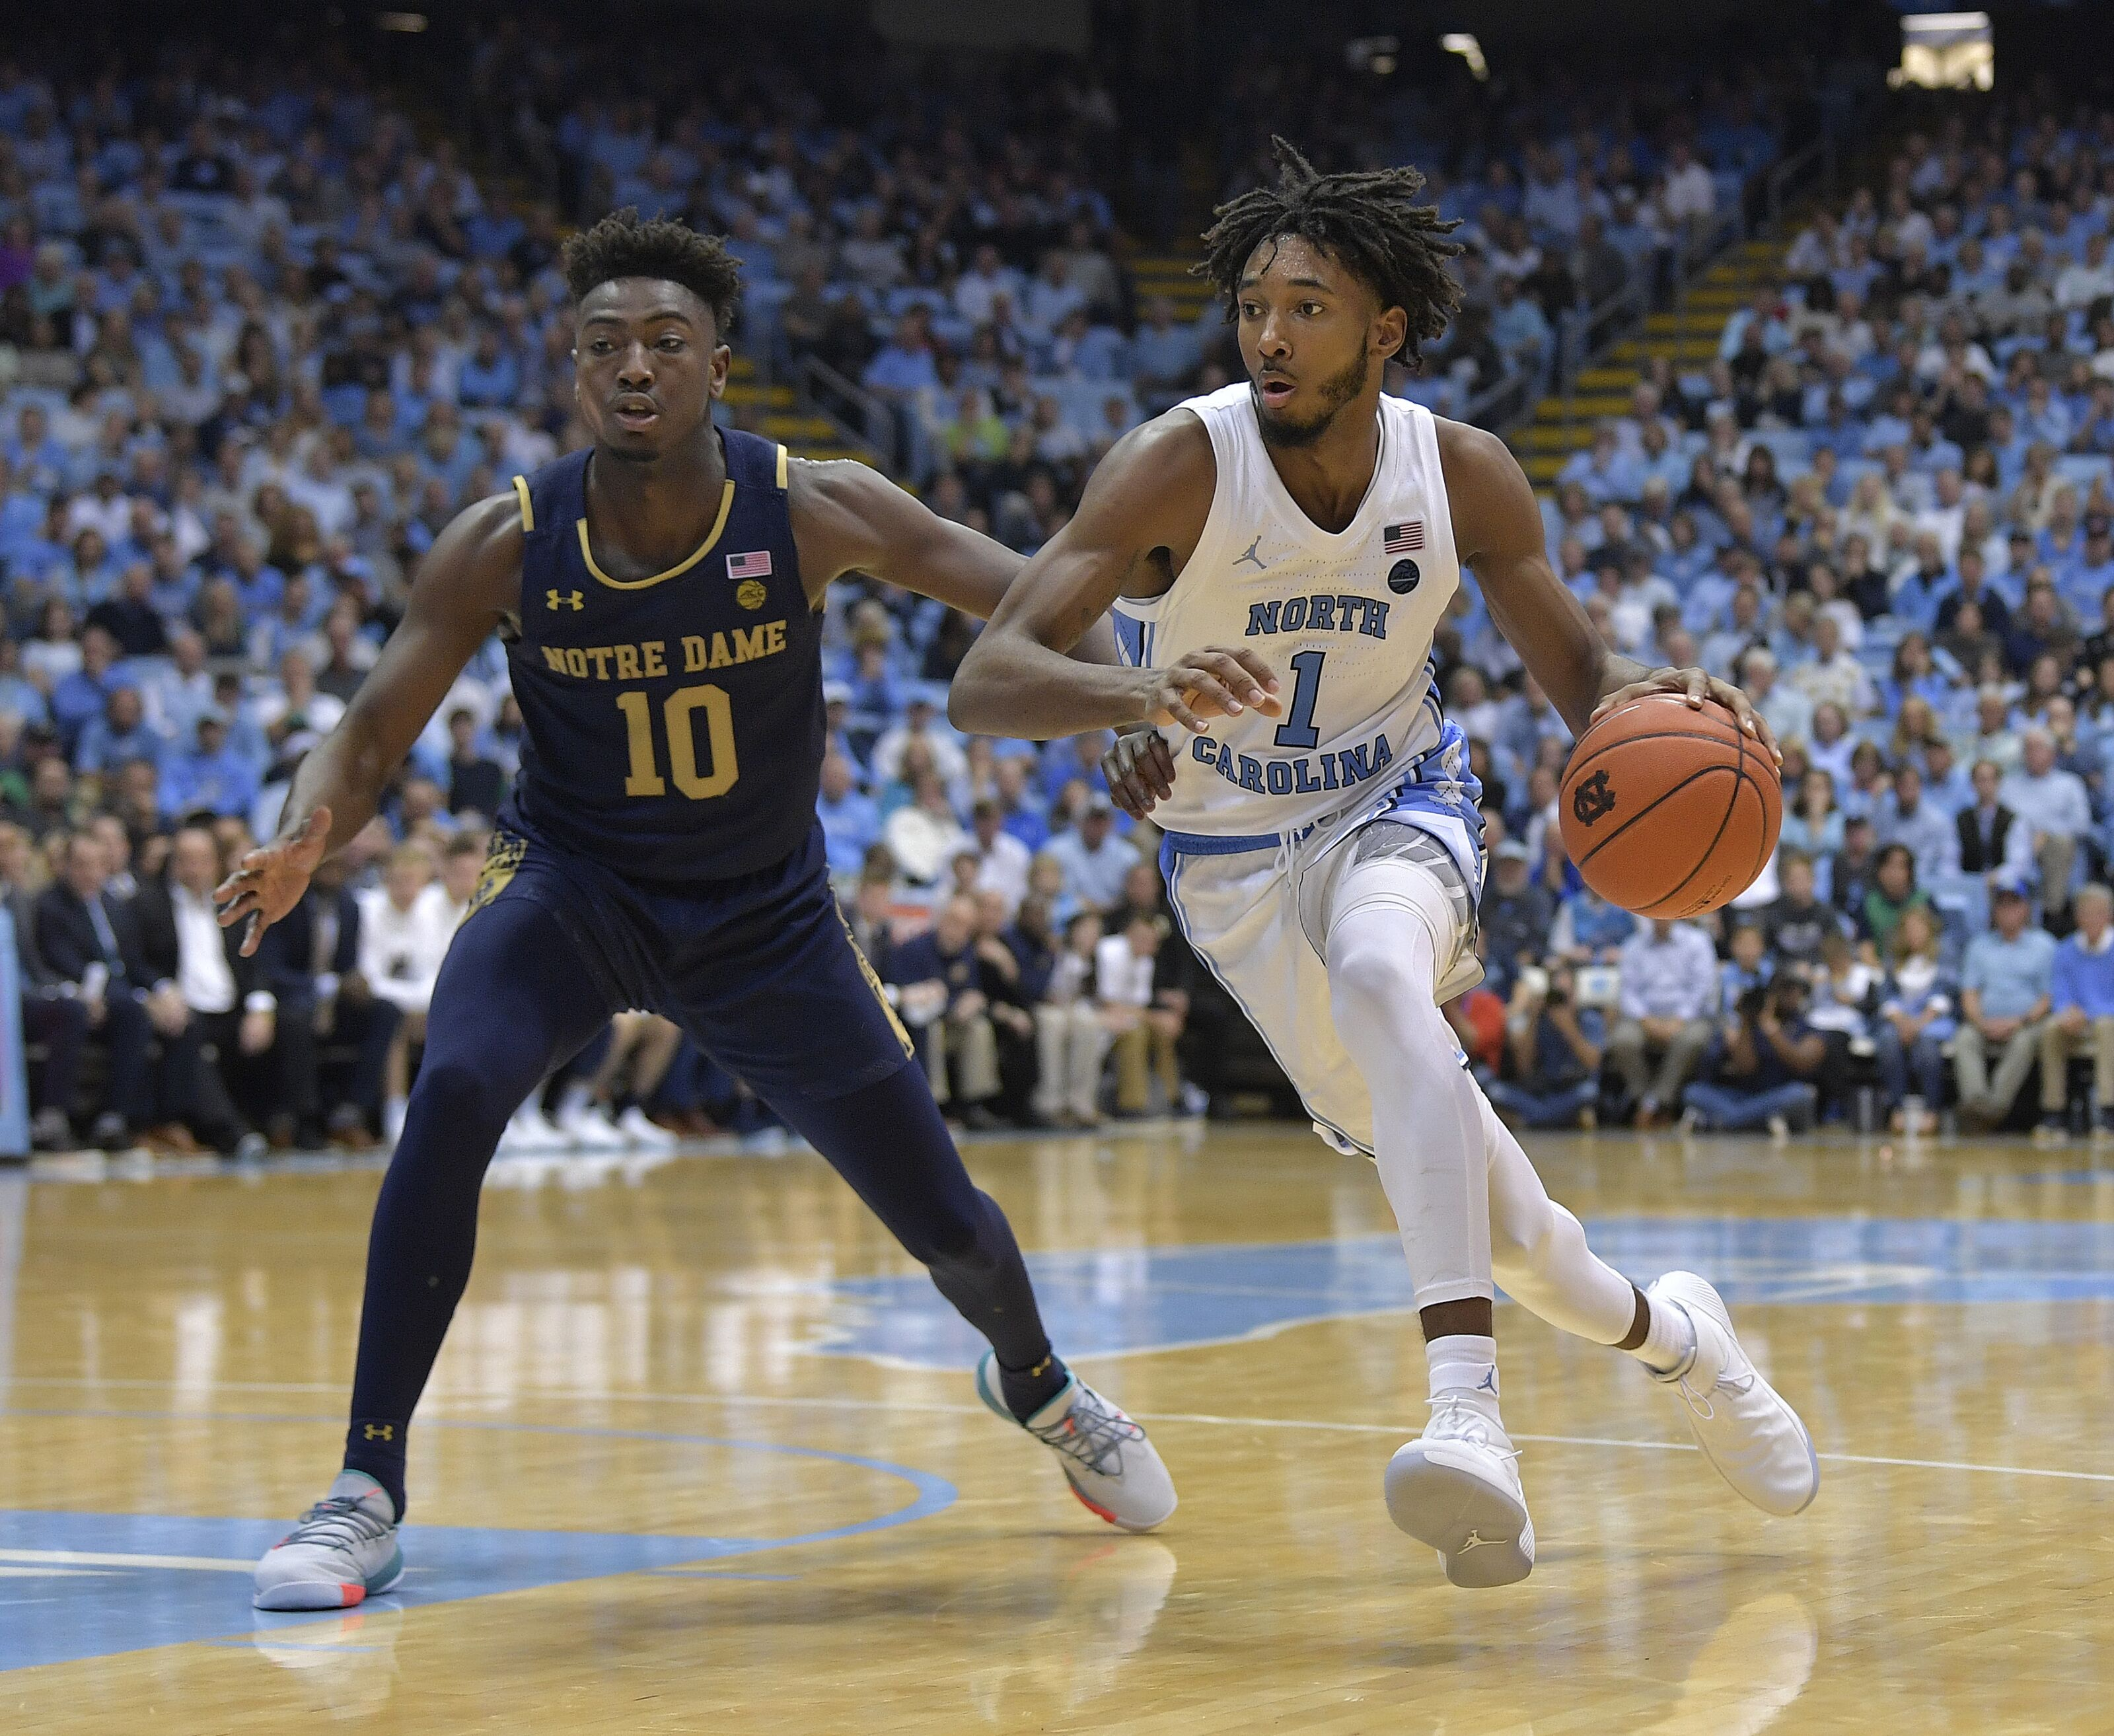 UNC Basketball vs. Notre Dame: Game preview, info, prediction and more